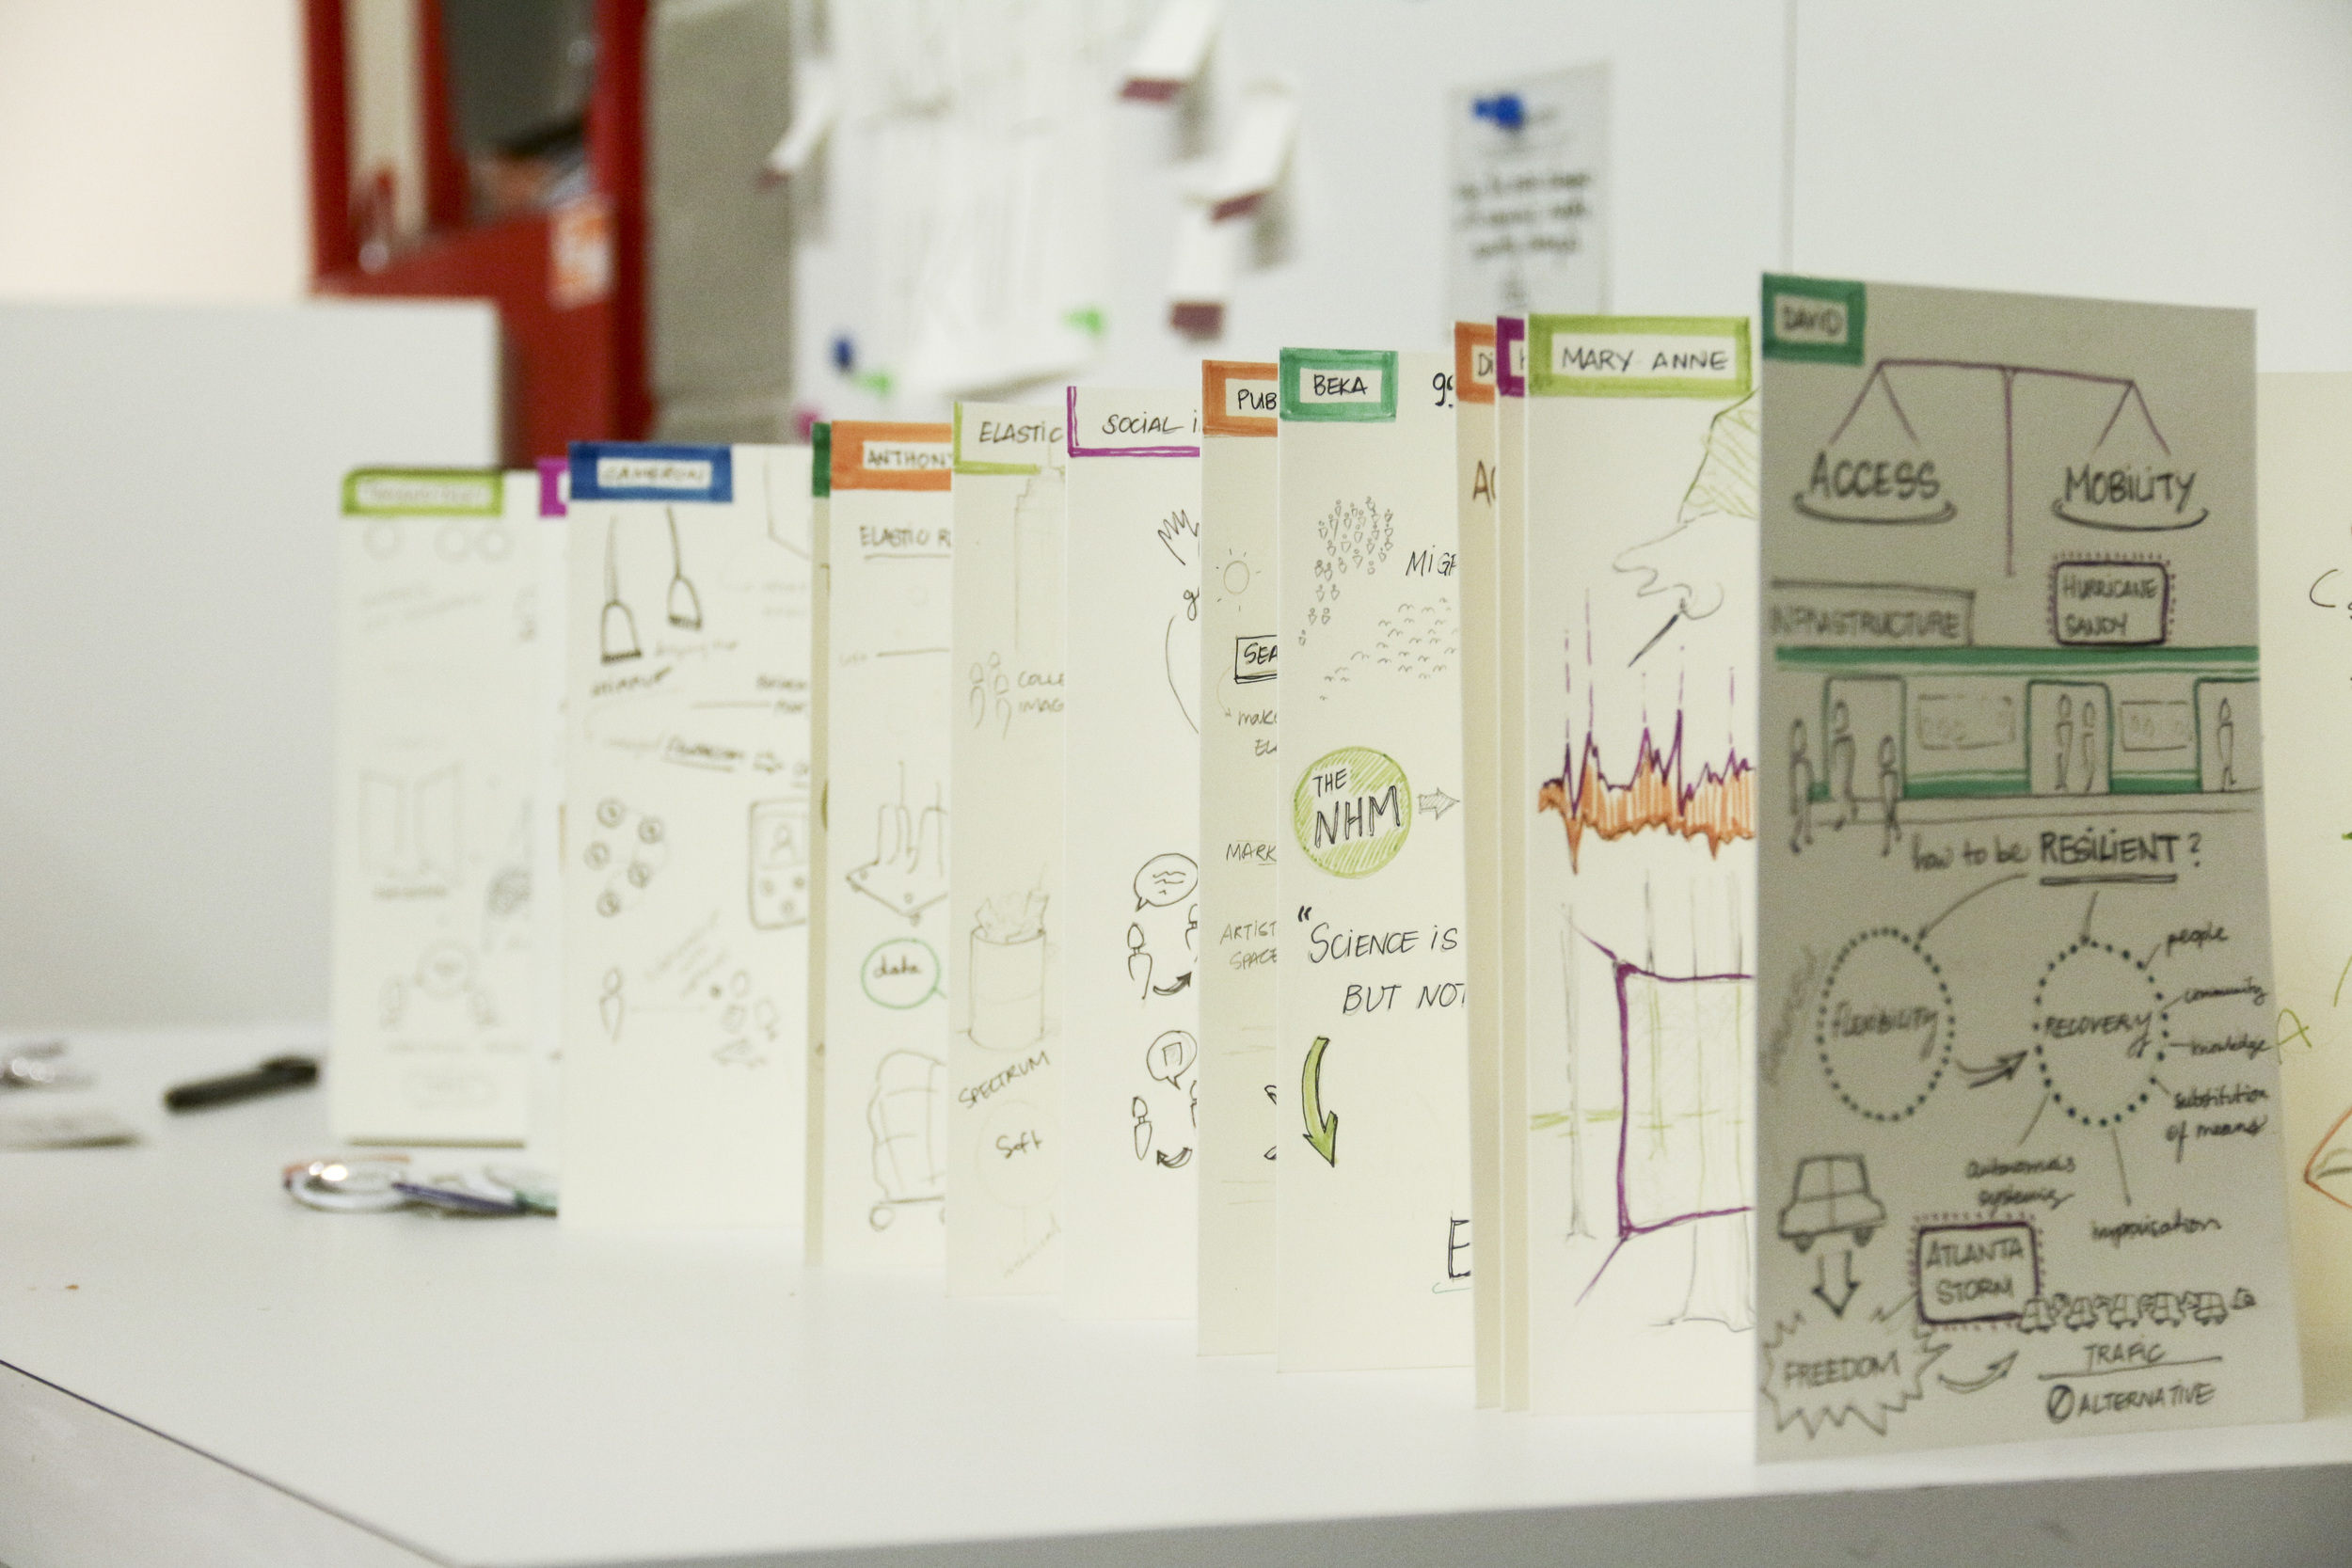 Our visual notes on elasticity made by our visual cross-pollinators sponsored by Moleskine.